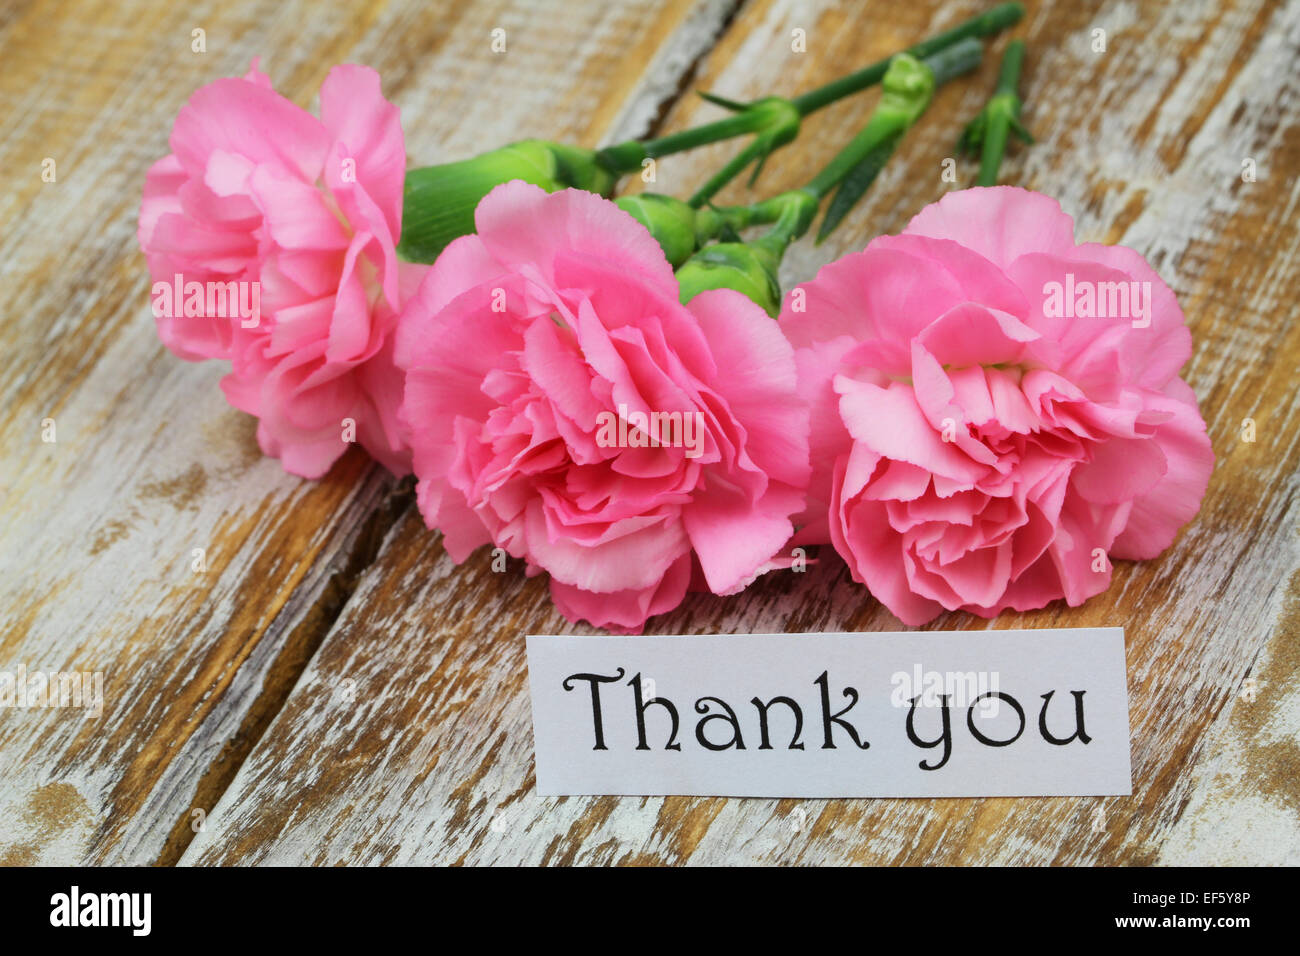 Thank you card with pink carnations on rustic wooden surface stock thank you card with pink carnations on rustic wooden surface izmirmasajfo